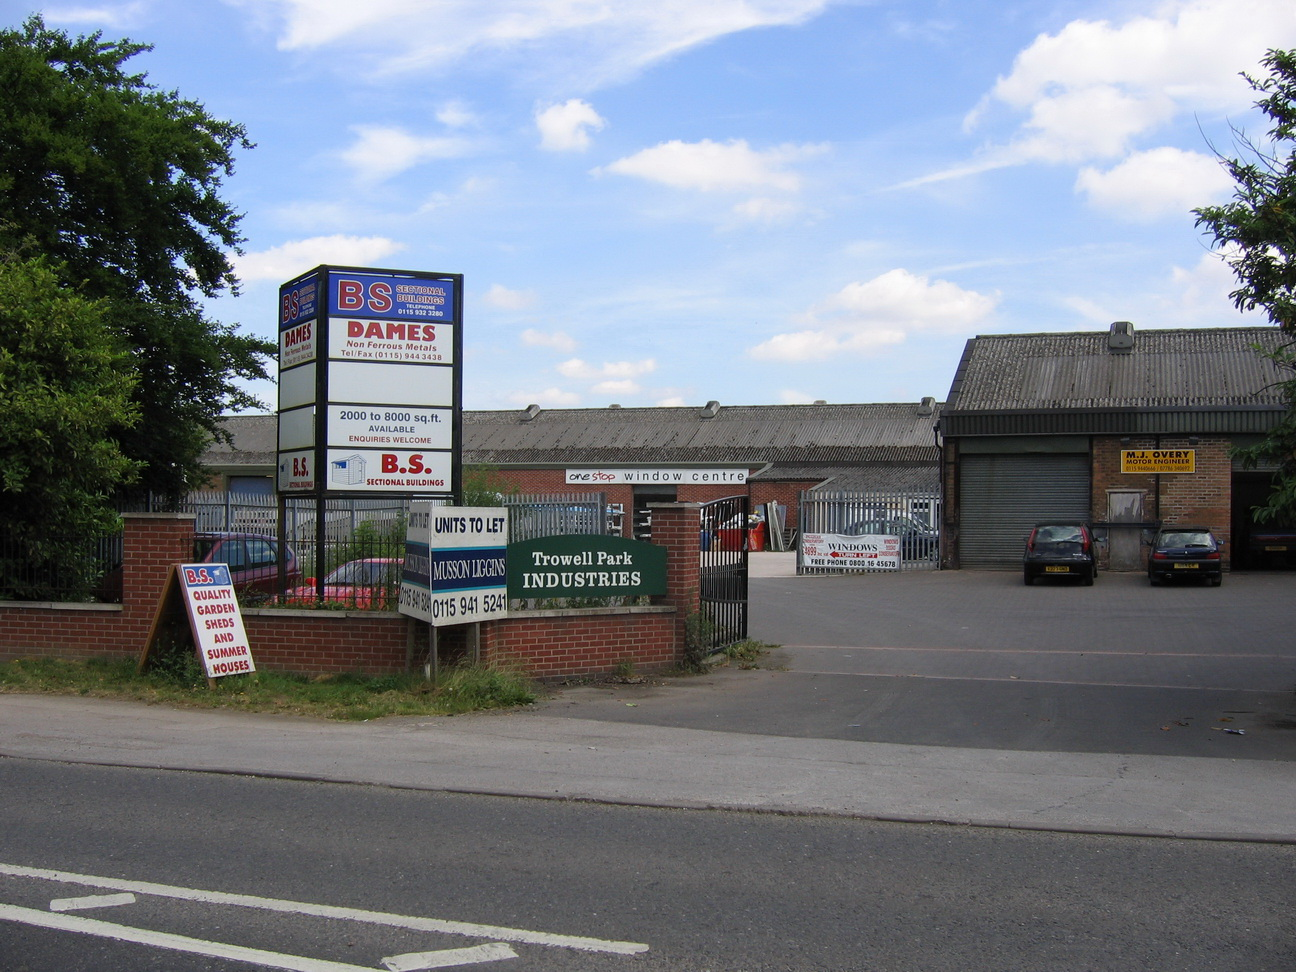 industrial-area-stapleford-rd